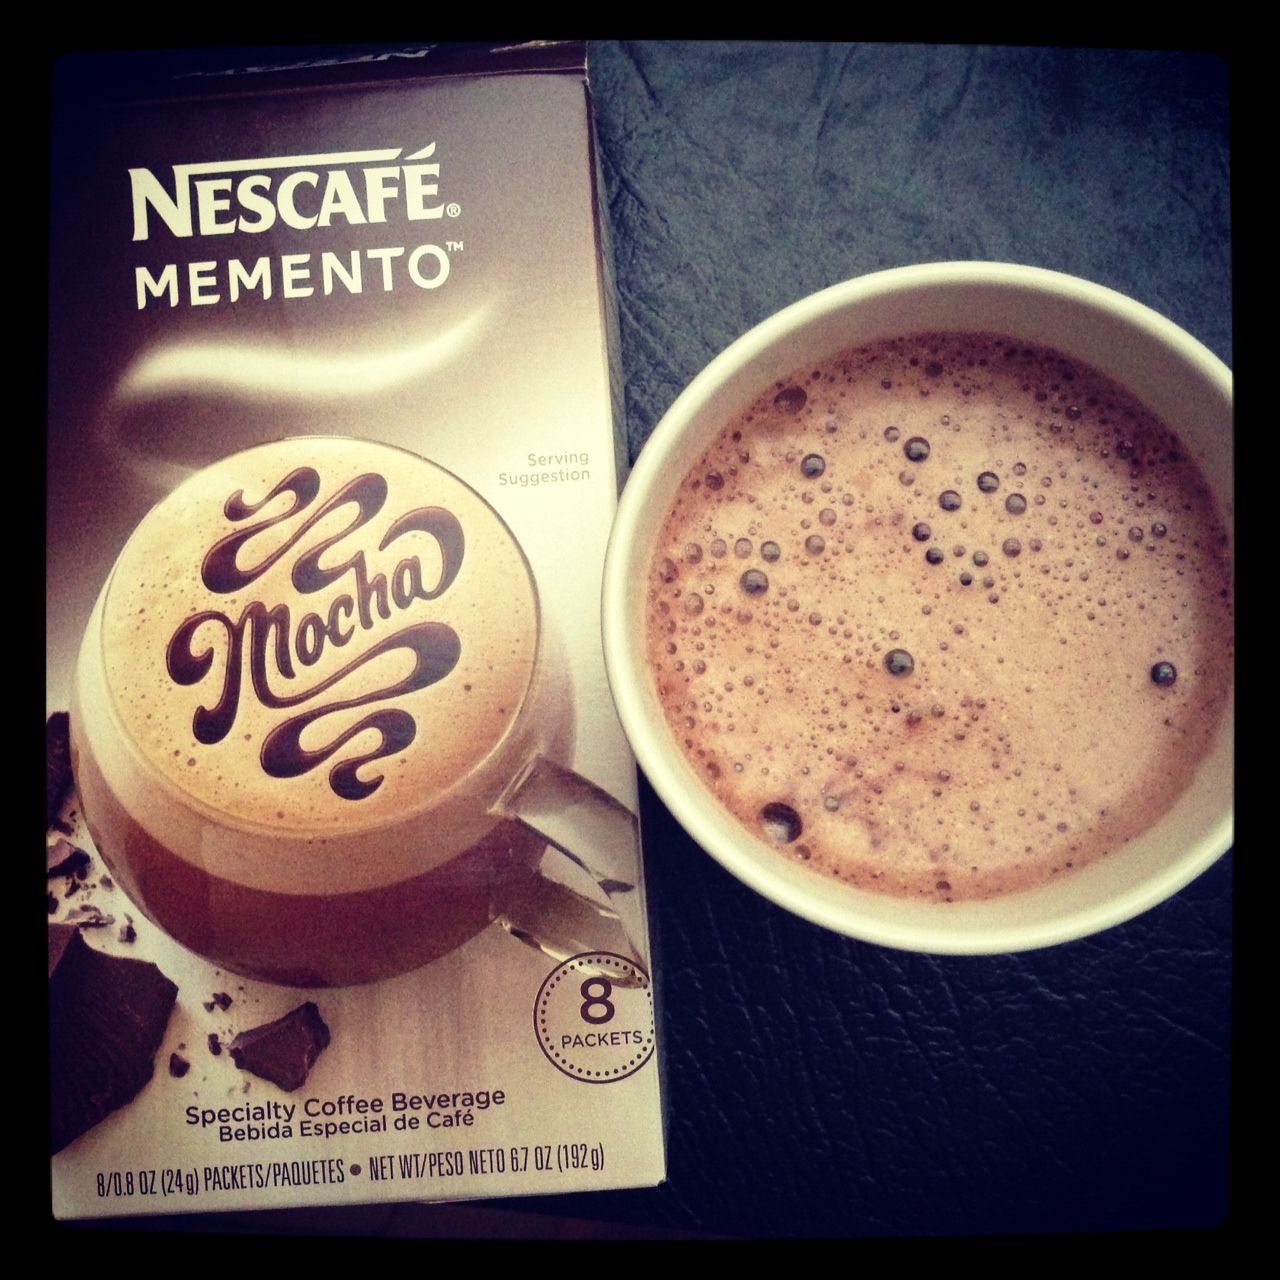 nescafe memento mocha. Would be really cute as part of coffee bar. #GotItFree